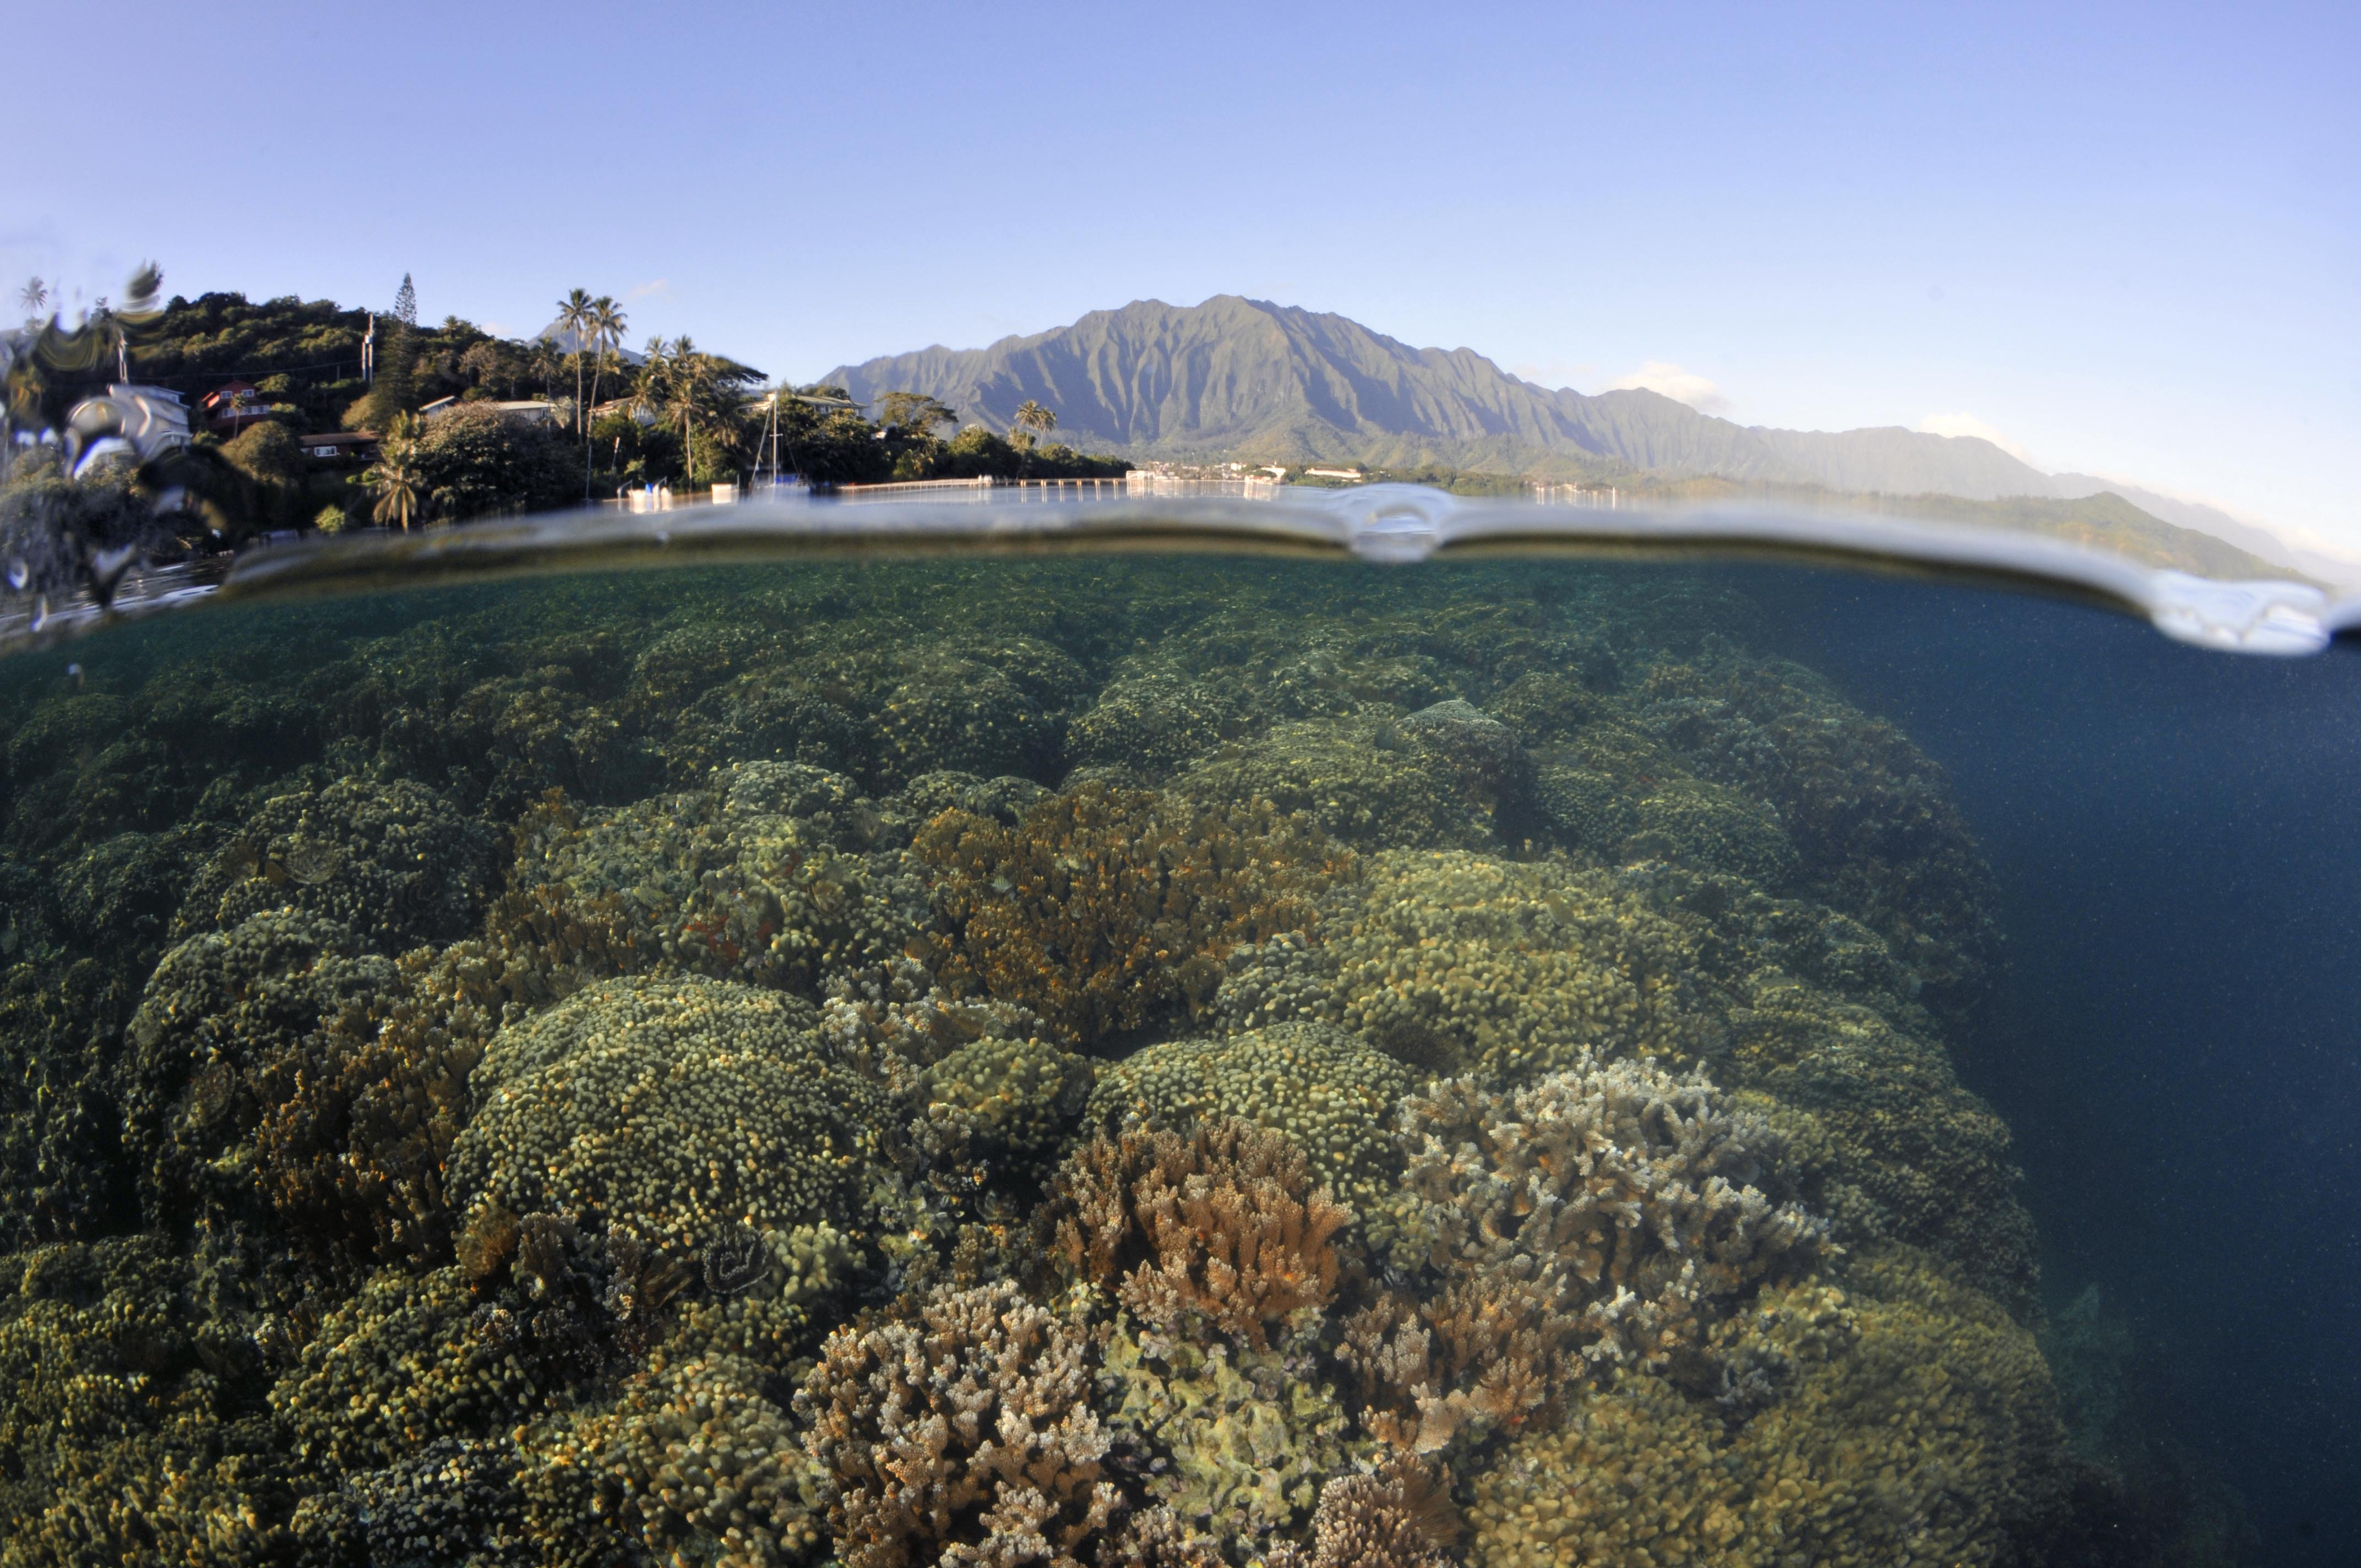 Split image of coral formations near the coast and the Koolau mountains in the background, Kaneohe Bay, Oahu, Hawaii, USA